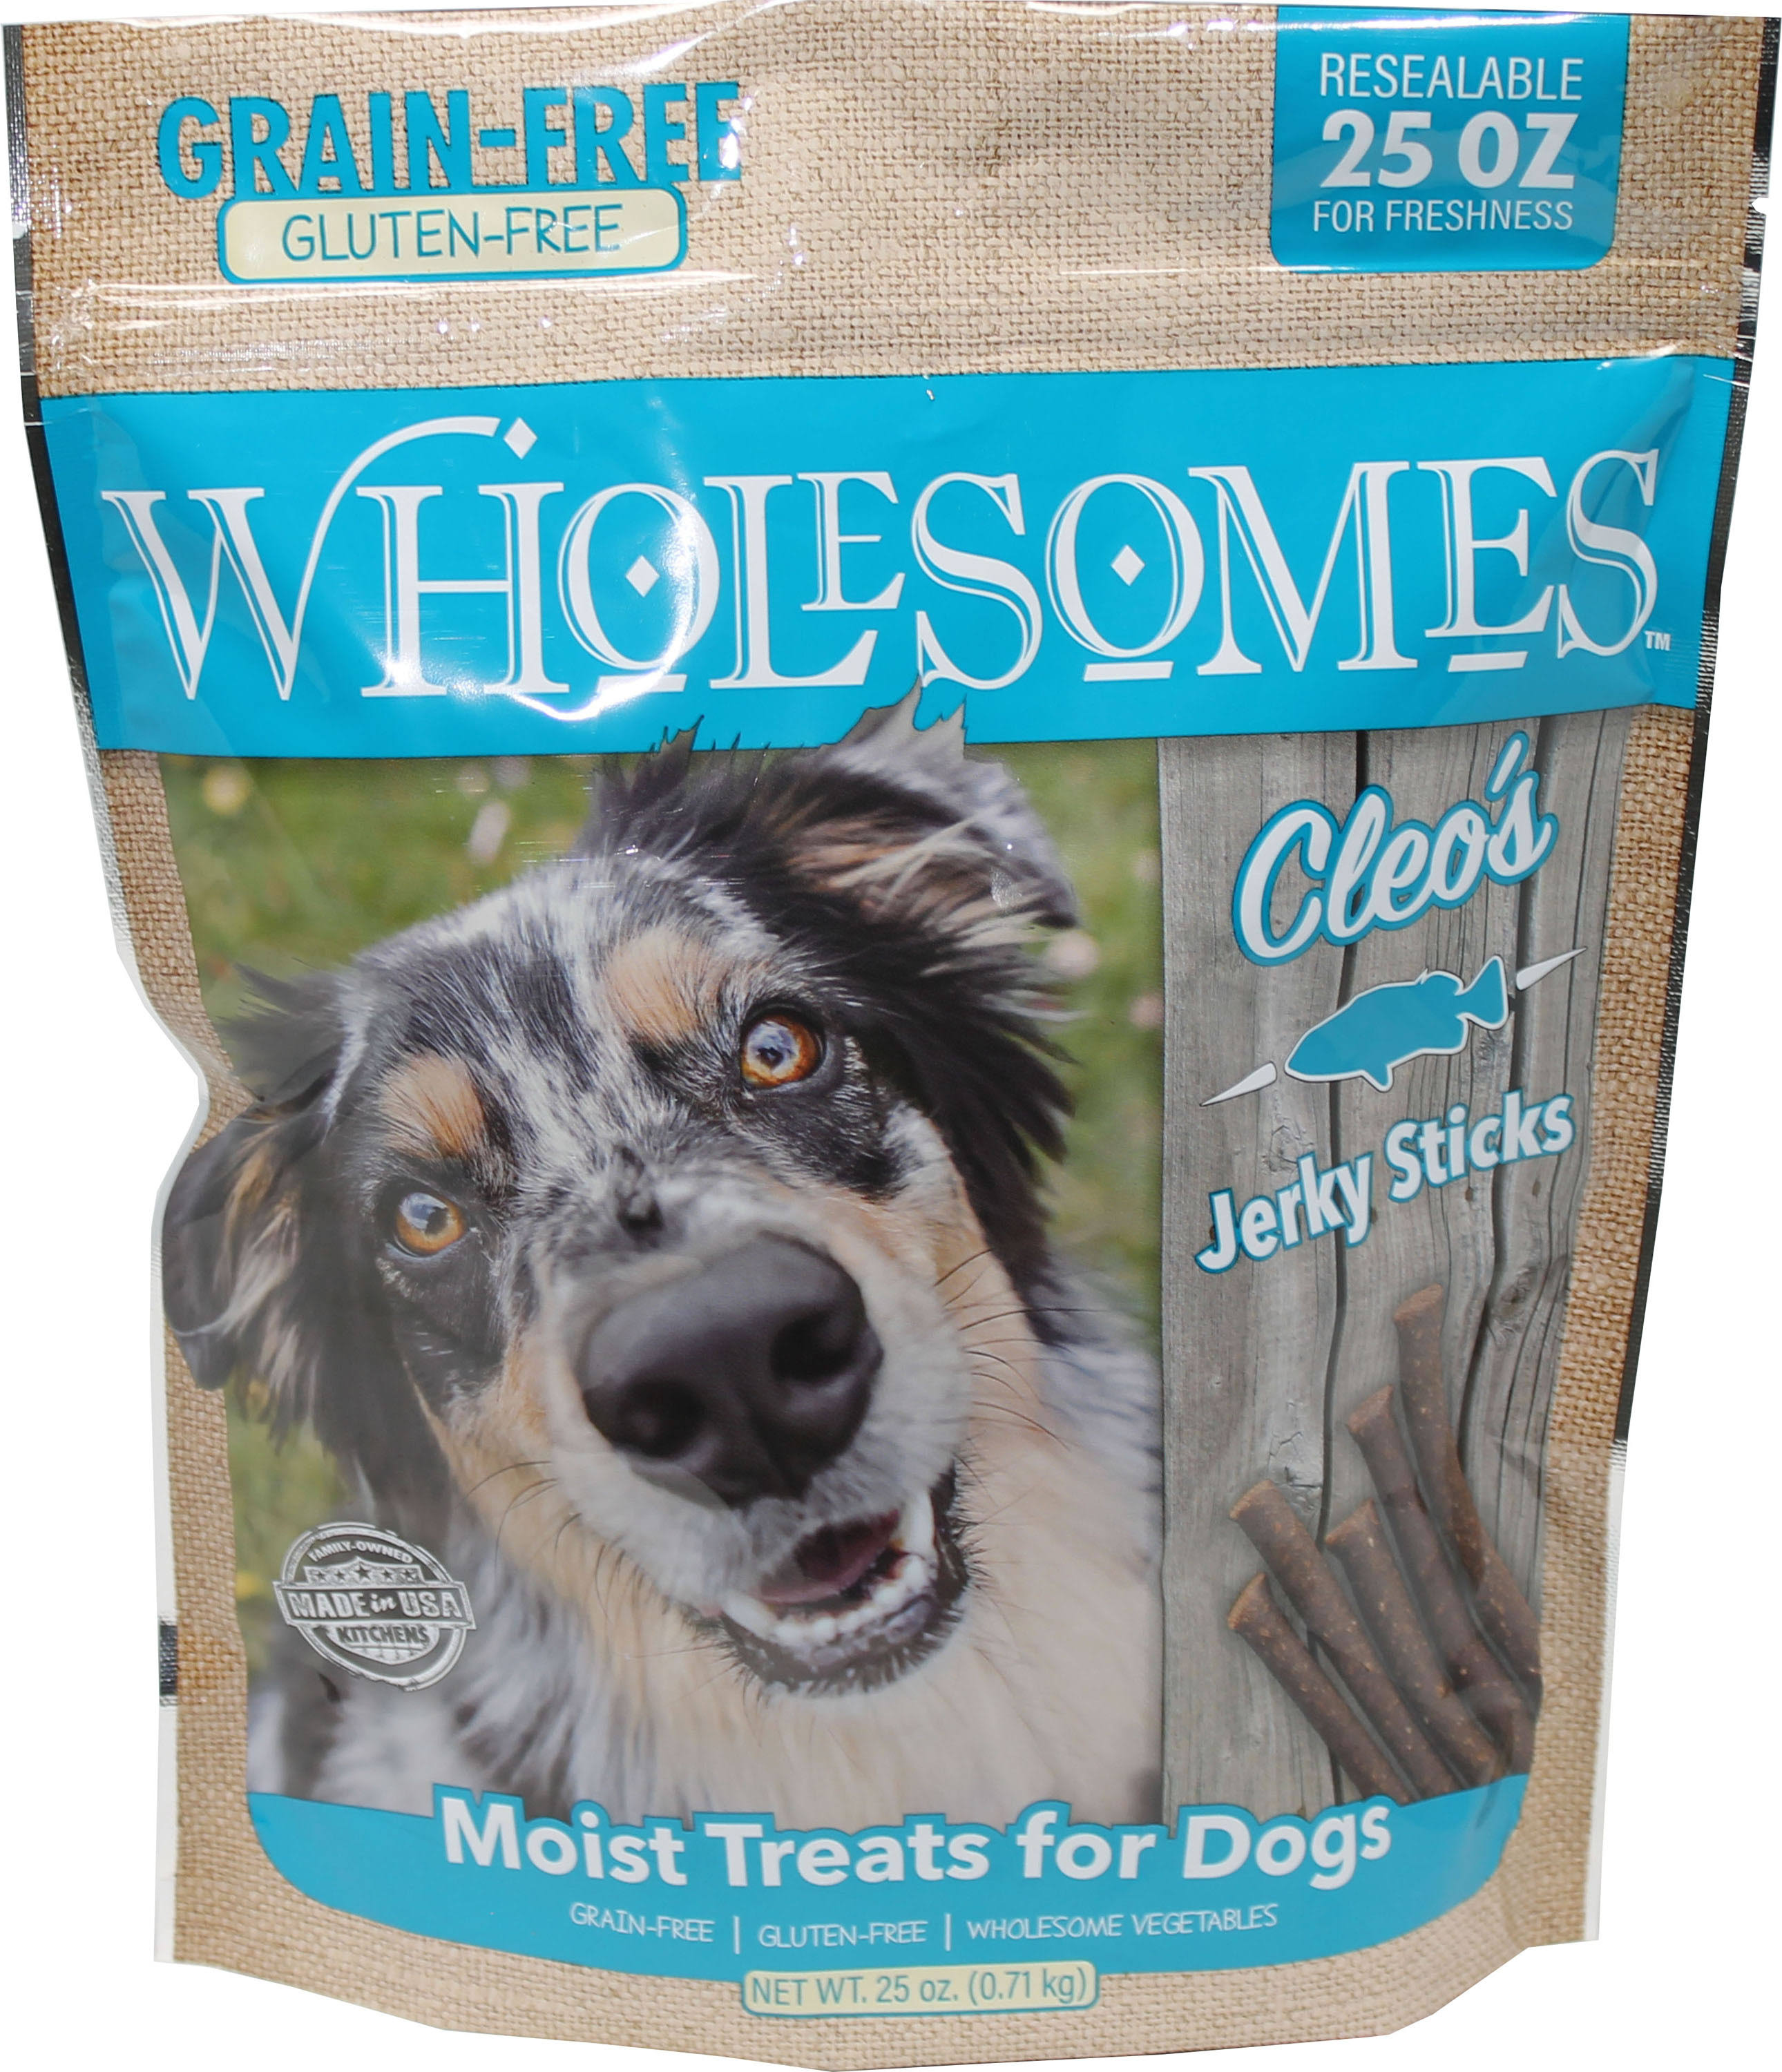 Wholesomes Cleo's Jerky Sticks Grain Free Dog Treats, 25 oz